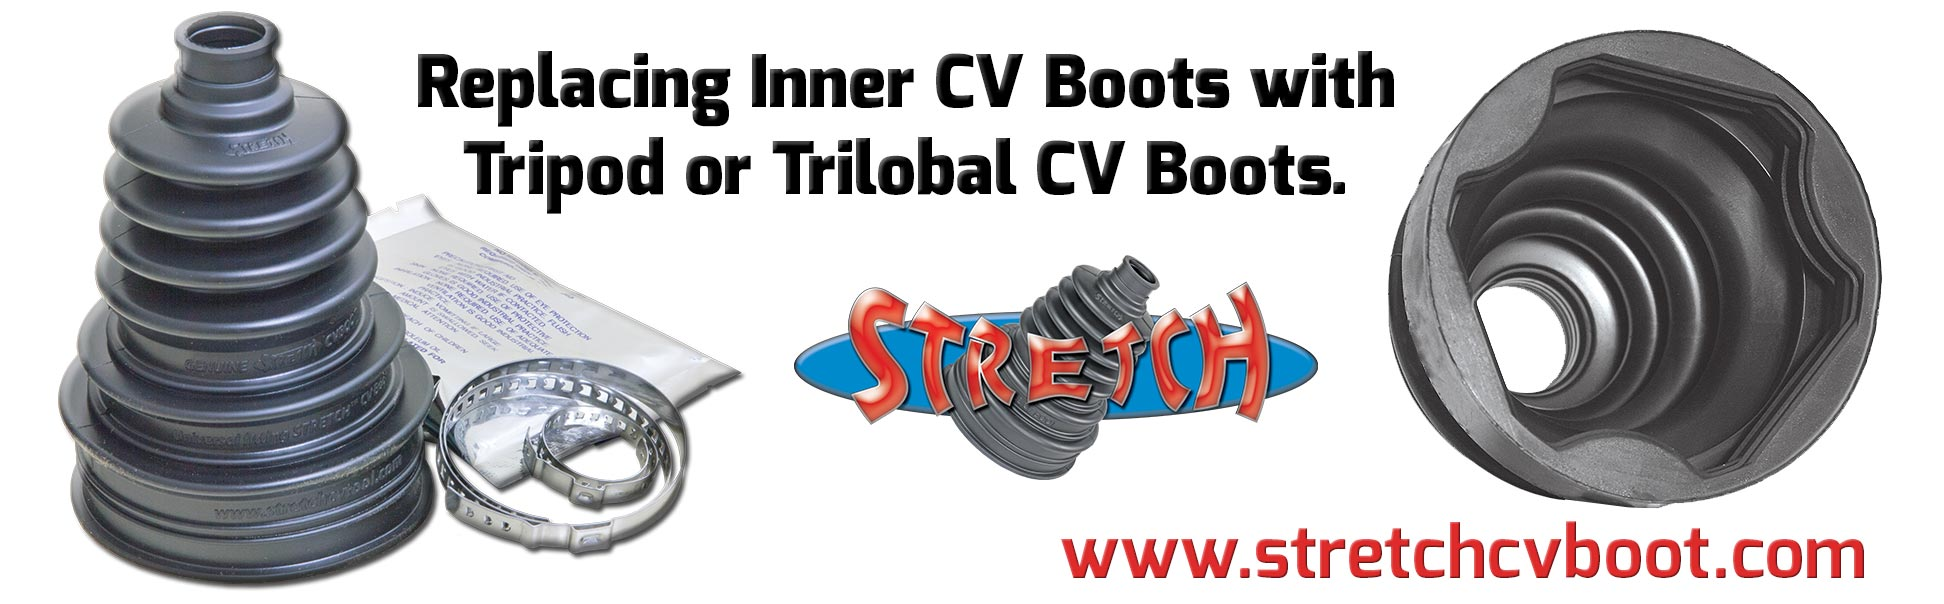 Replacing Tripod / Trilobal Inner CV Boots With STRETCH CV Boots